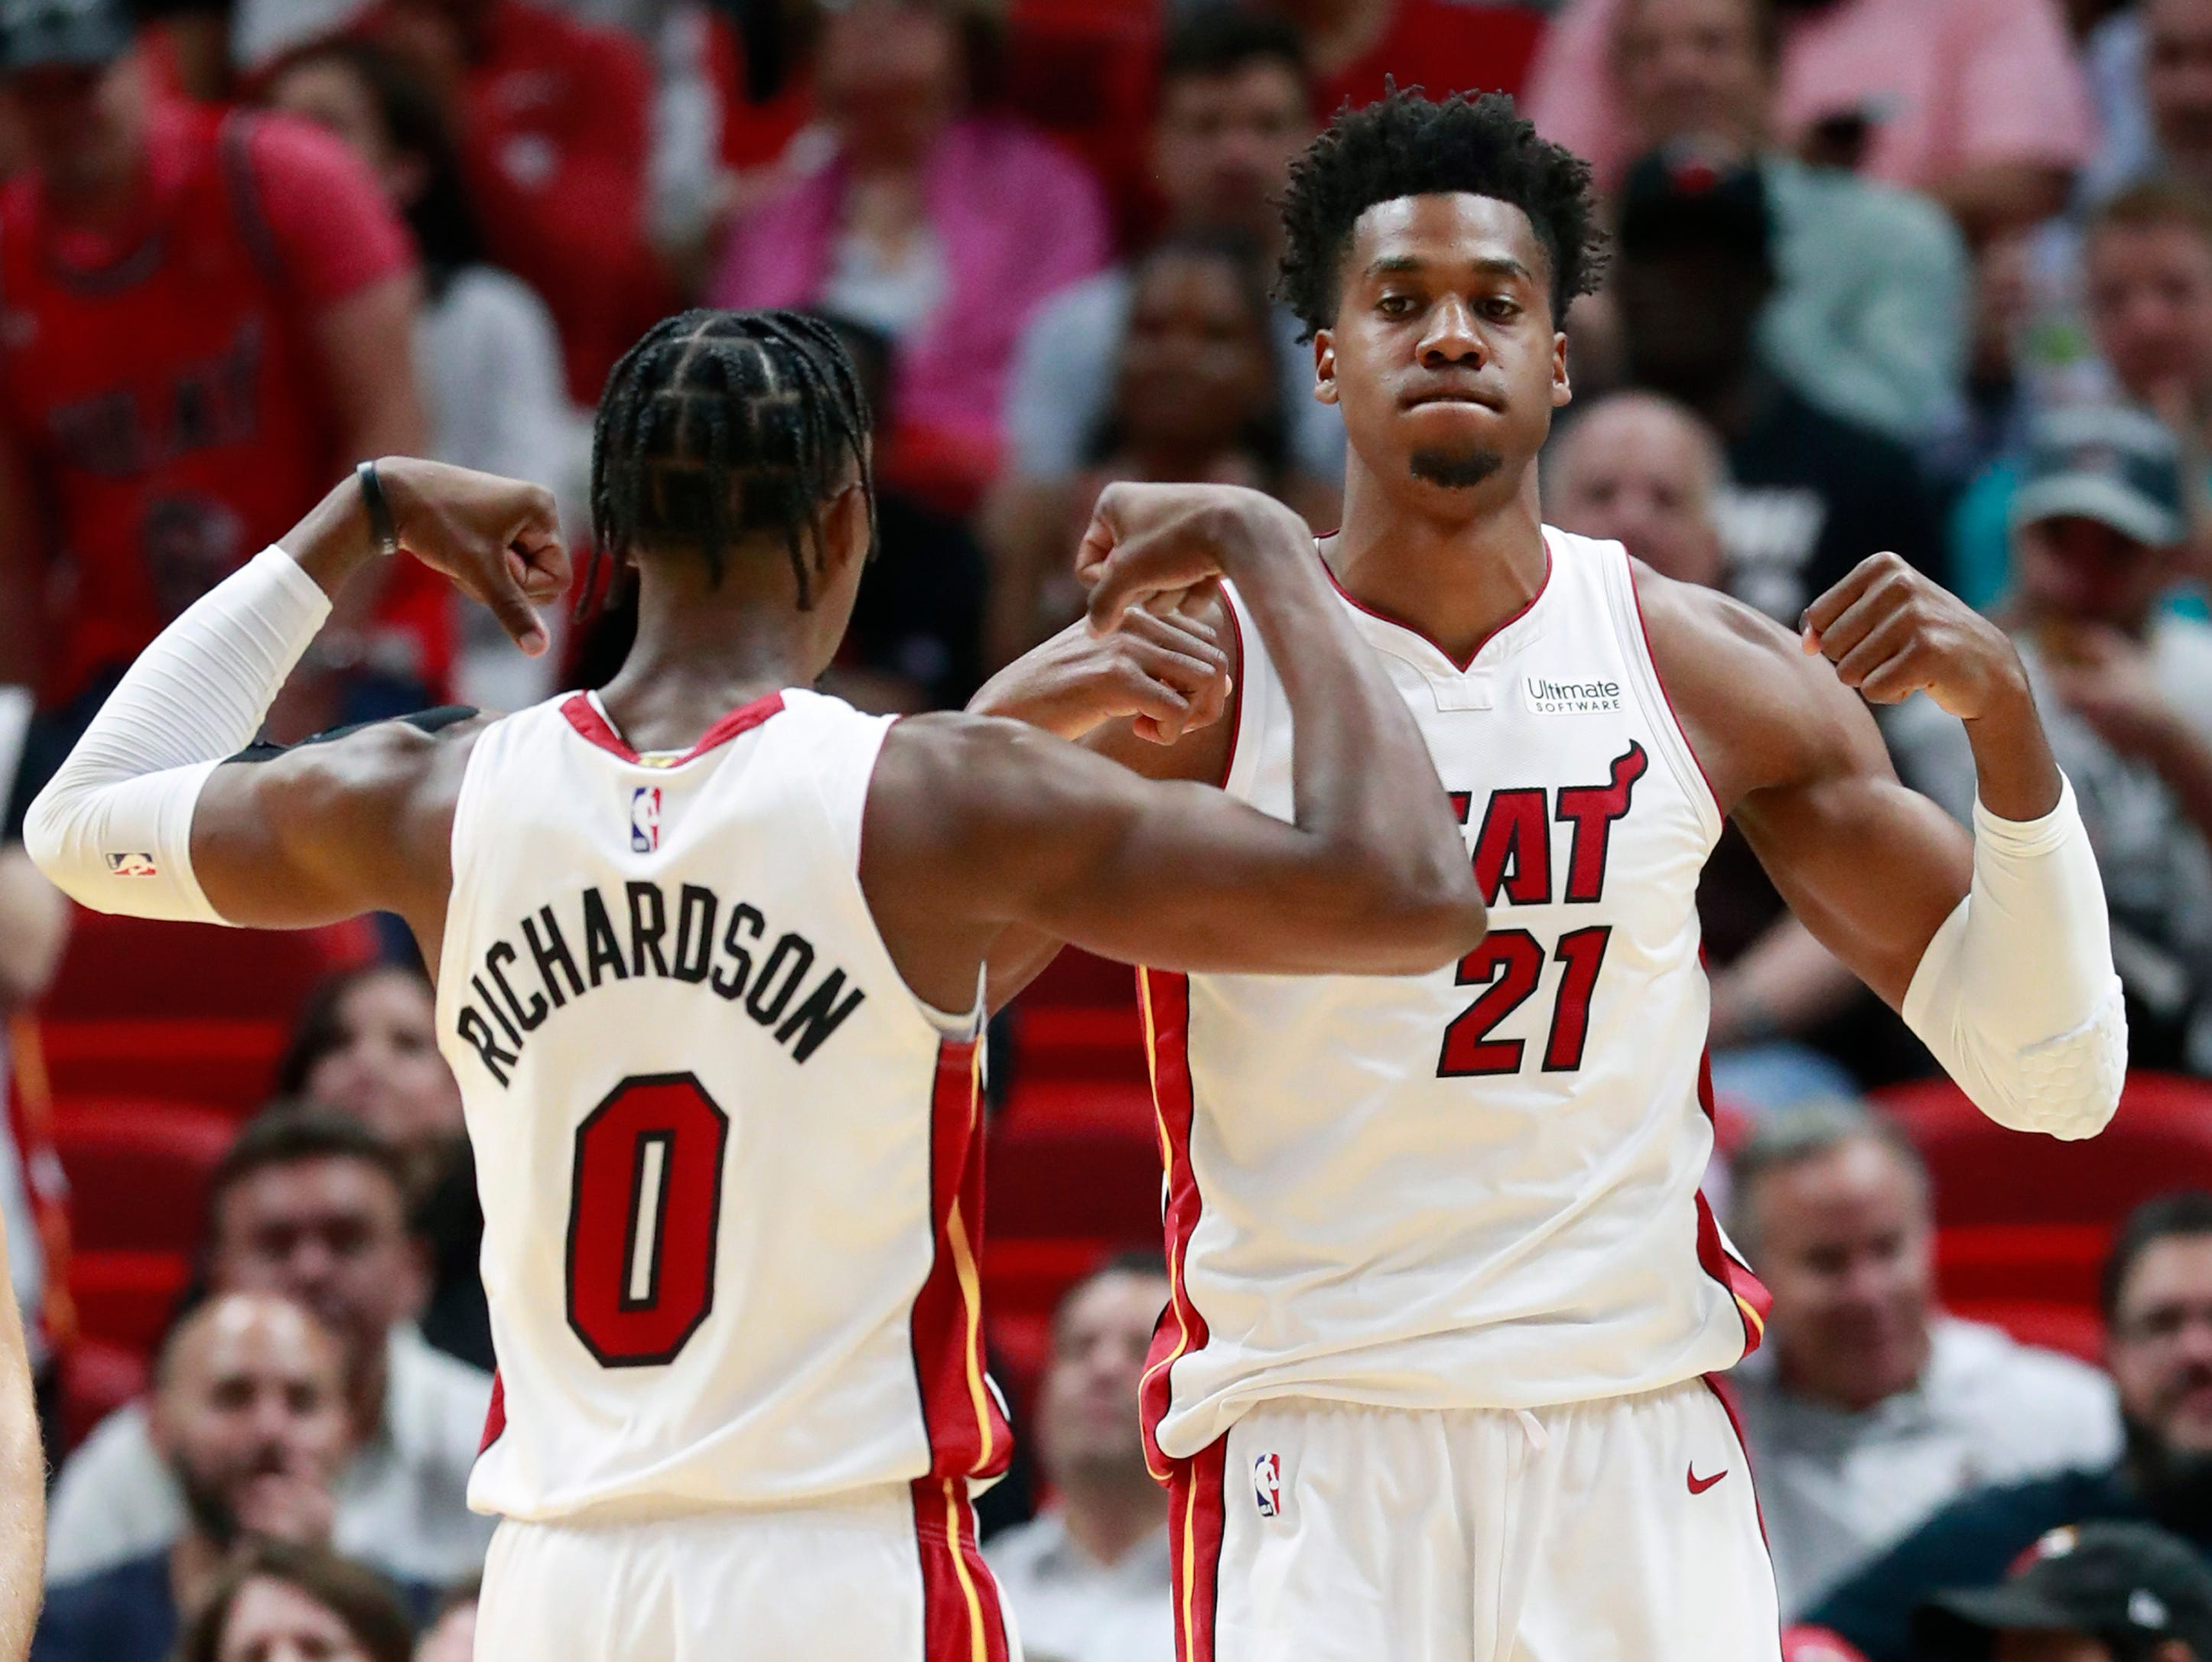 Miami Heat center Hassan Whiteside (21) and guard Josh Richardson (0) celebrate after Whiteside scored during the first half.